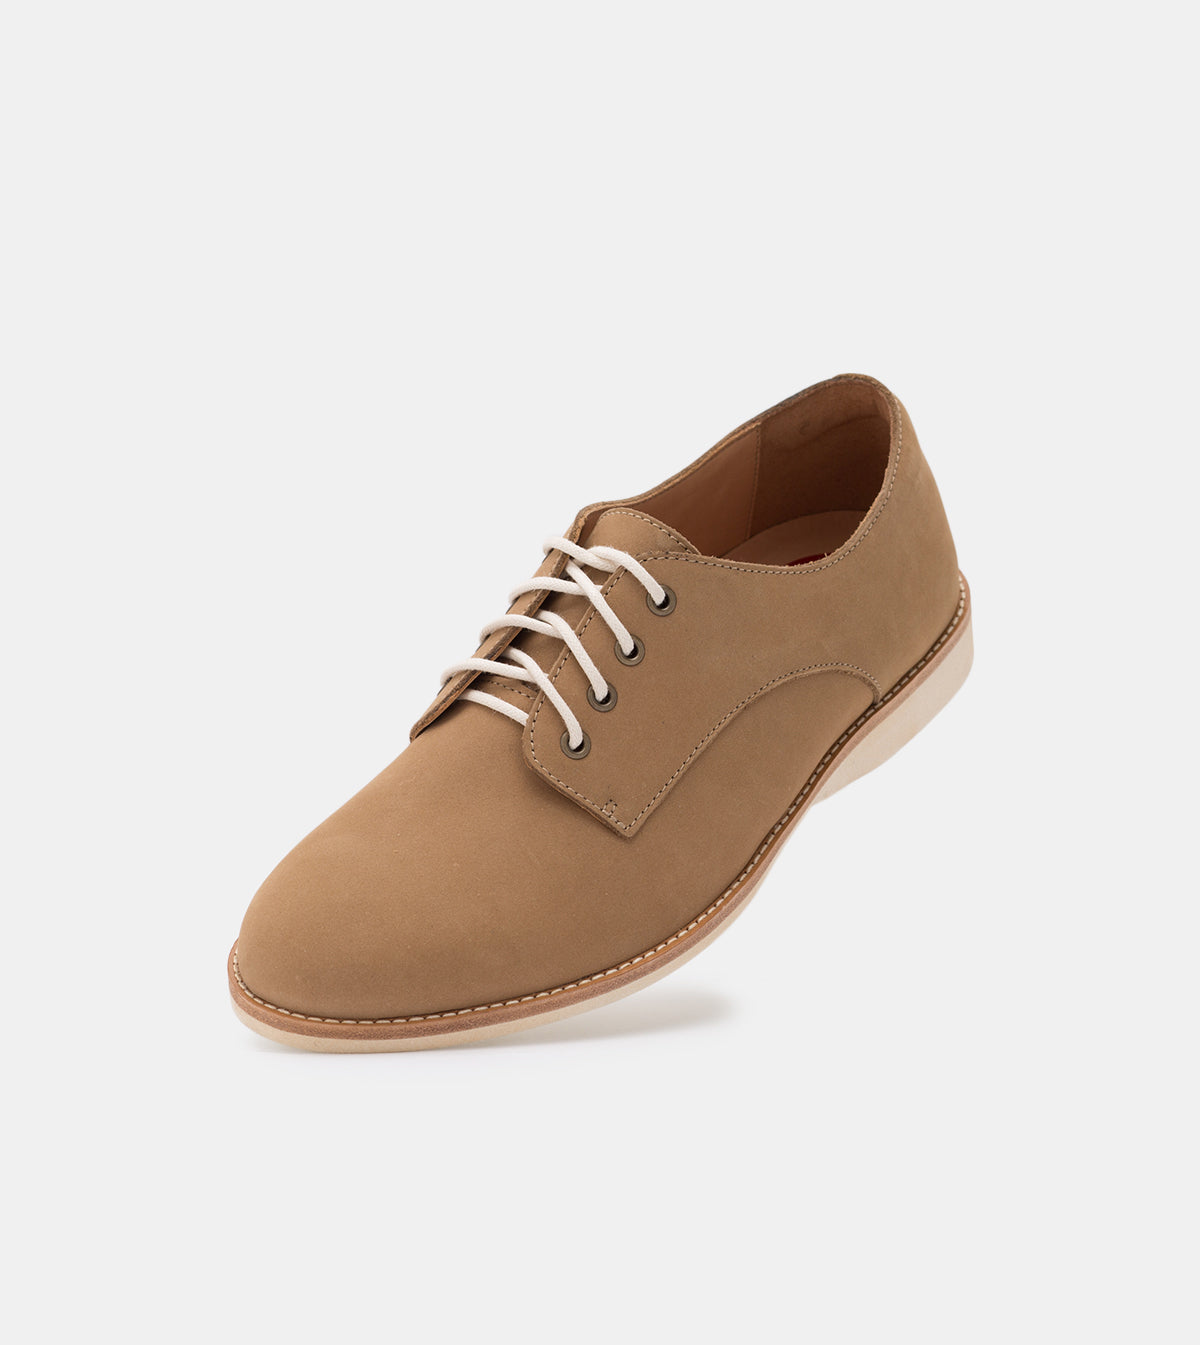 Rollie Derby Camel Shoes